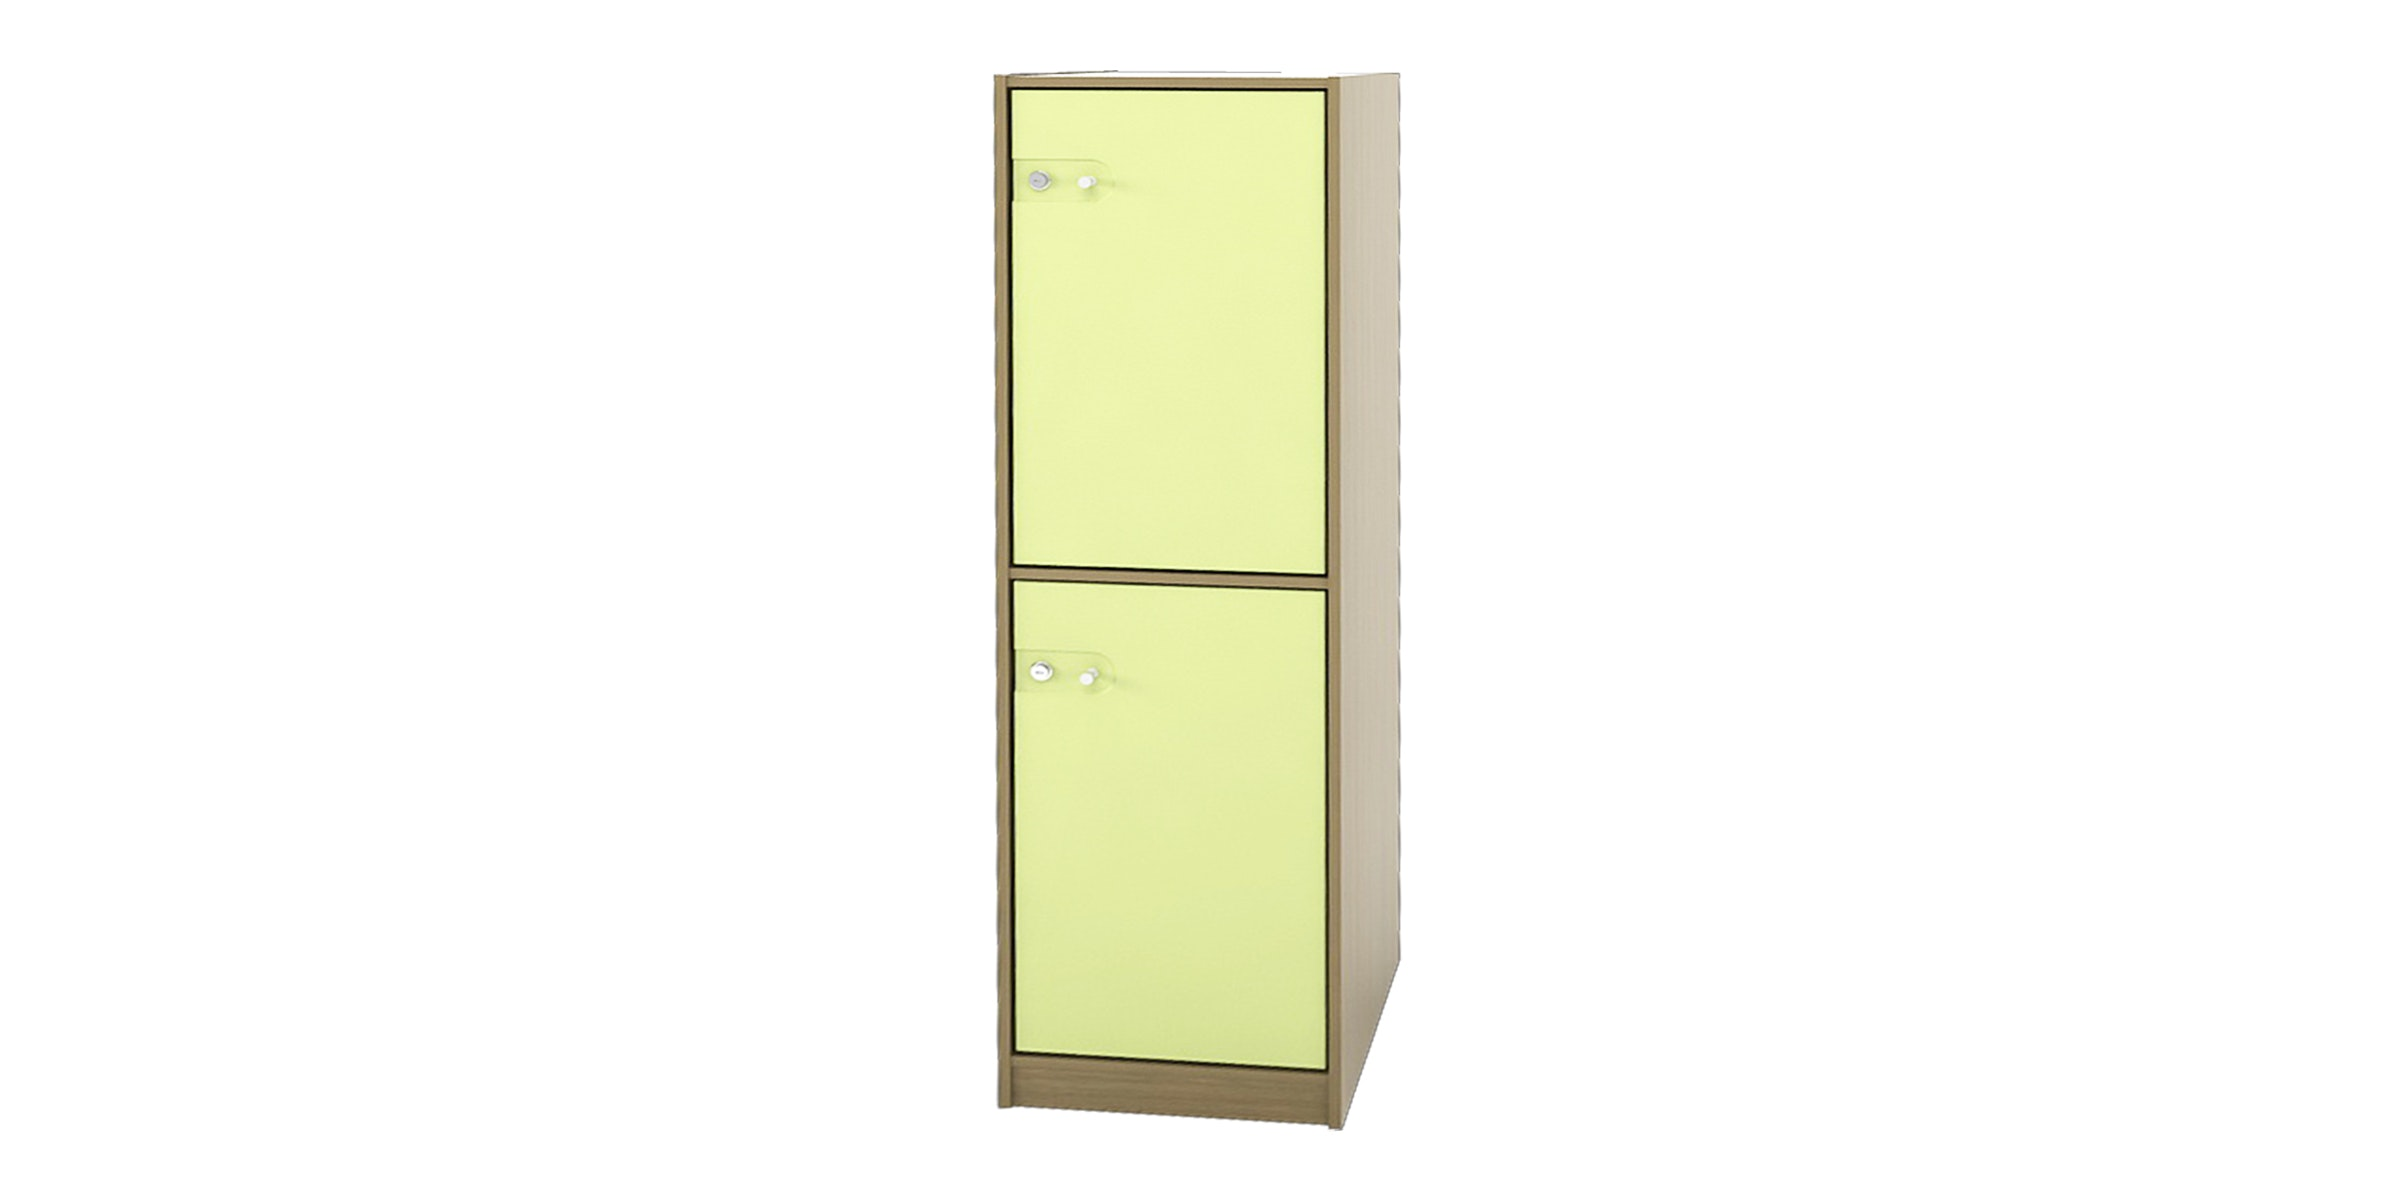 Pro Design Arla Loker 2 Pintu - Home Oak - Light Green